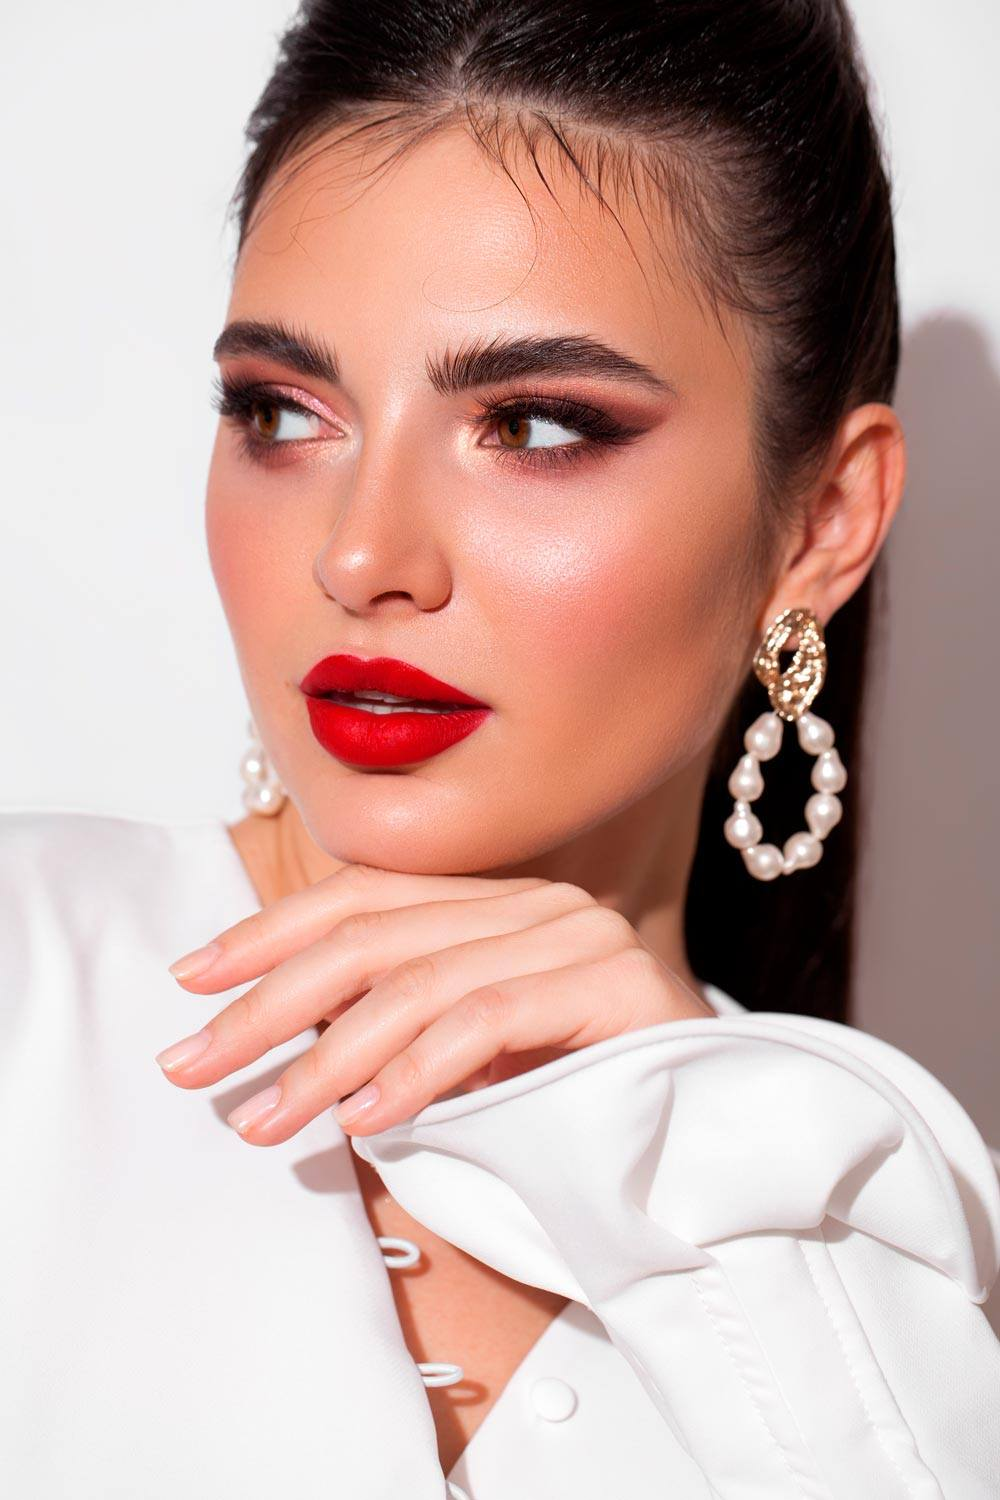 Hot Makeup Ideas To Inspire You